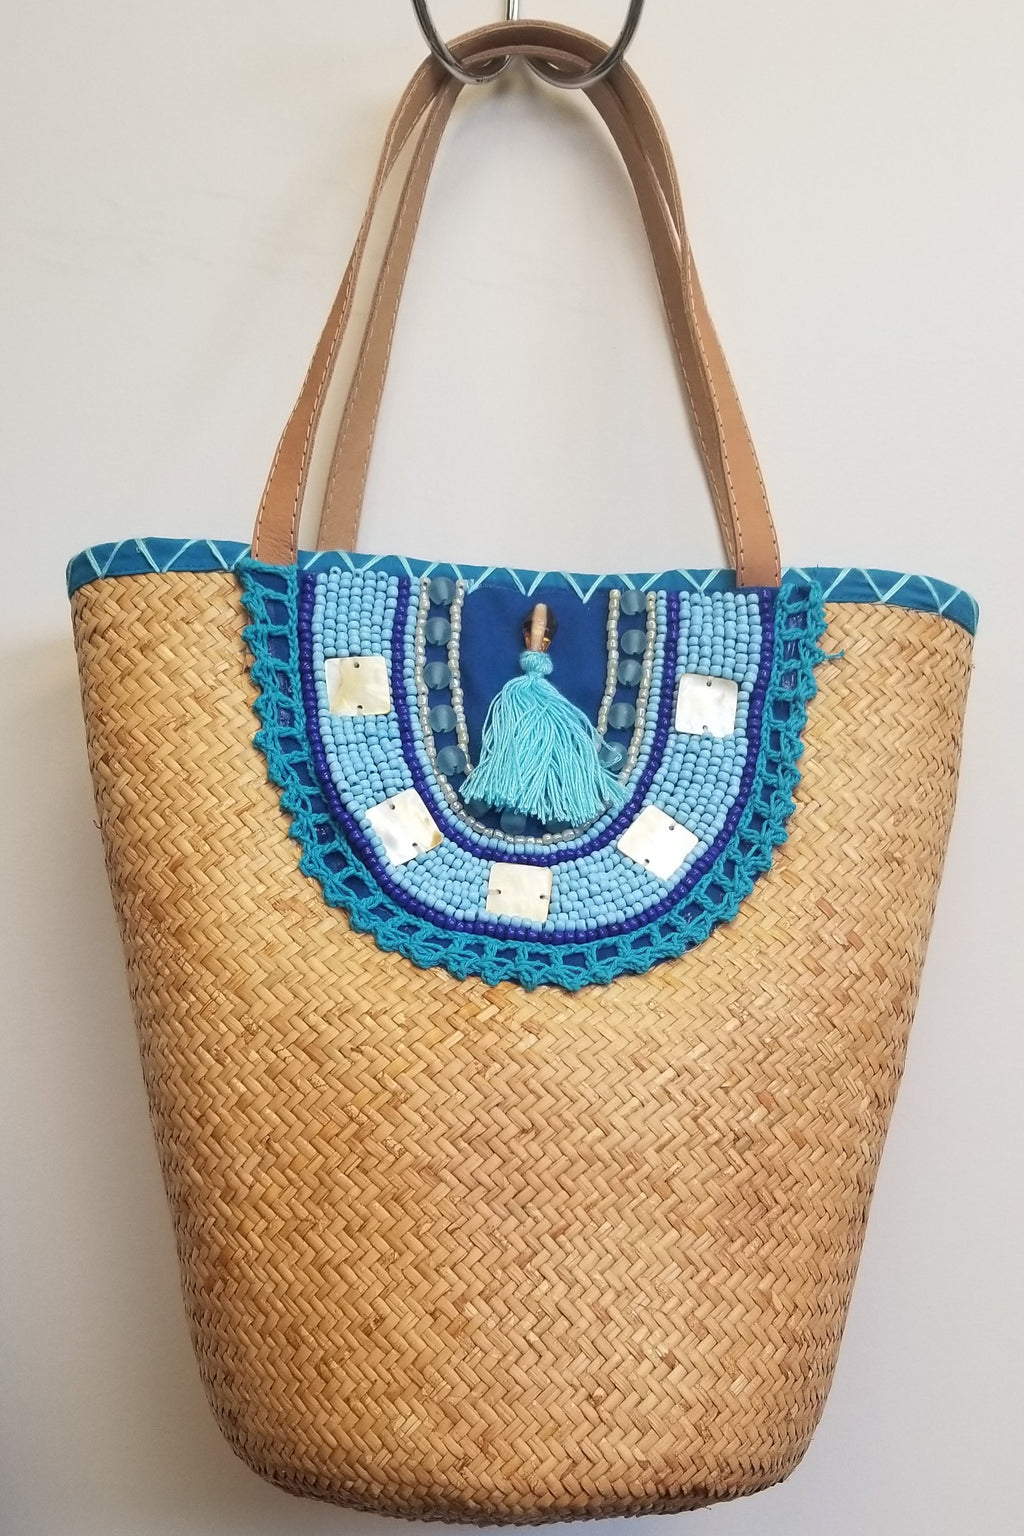 Blue Rattan Hand Beaded Bag - Blue Sky Clothing Co